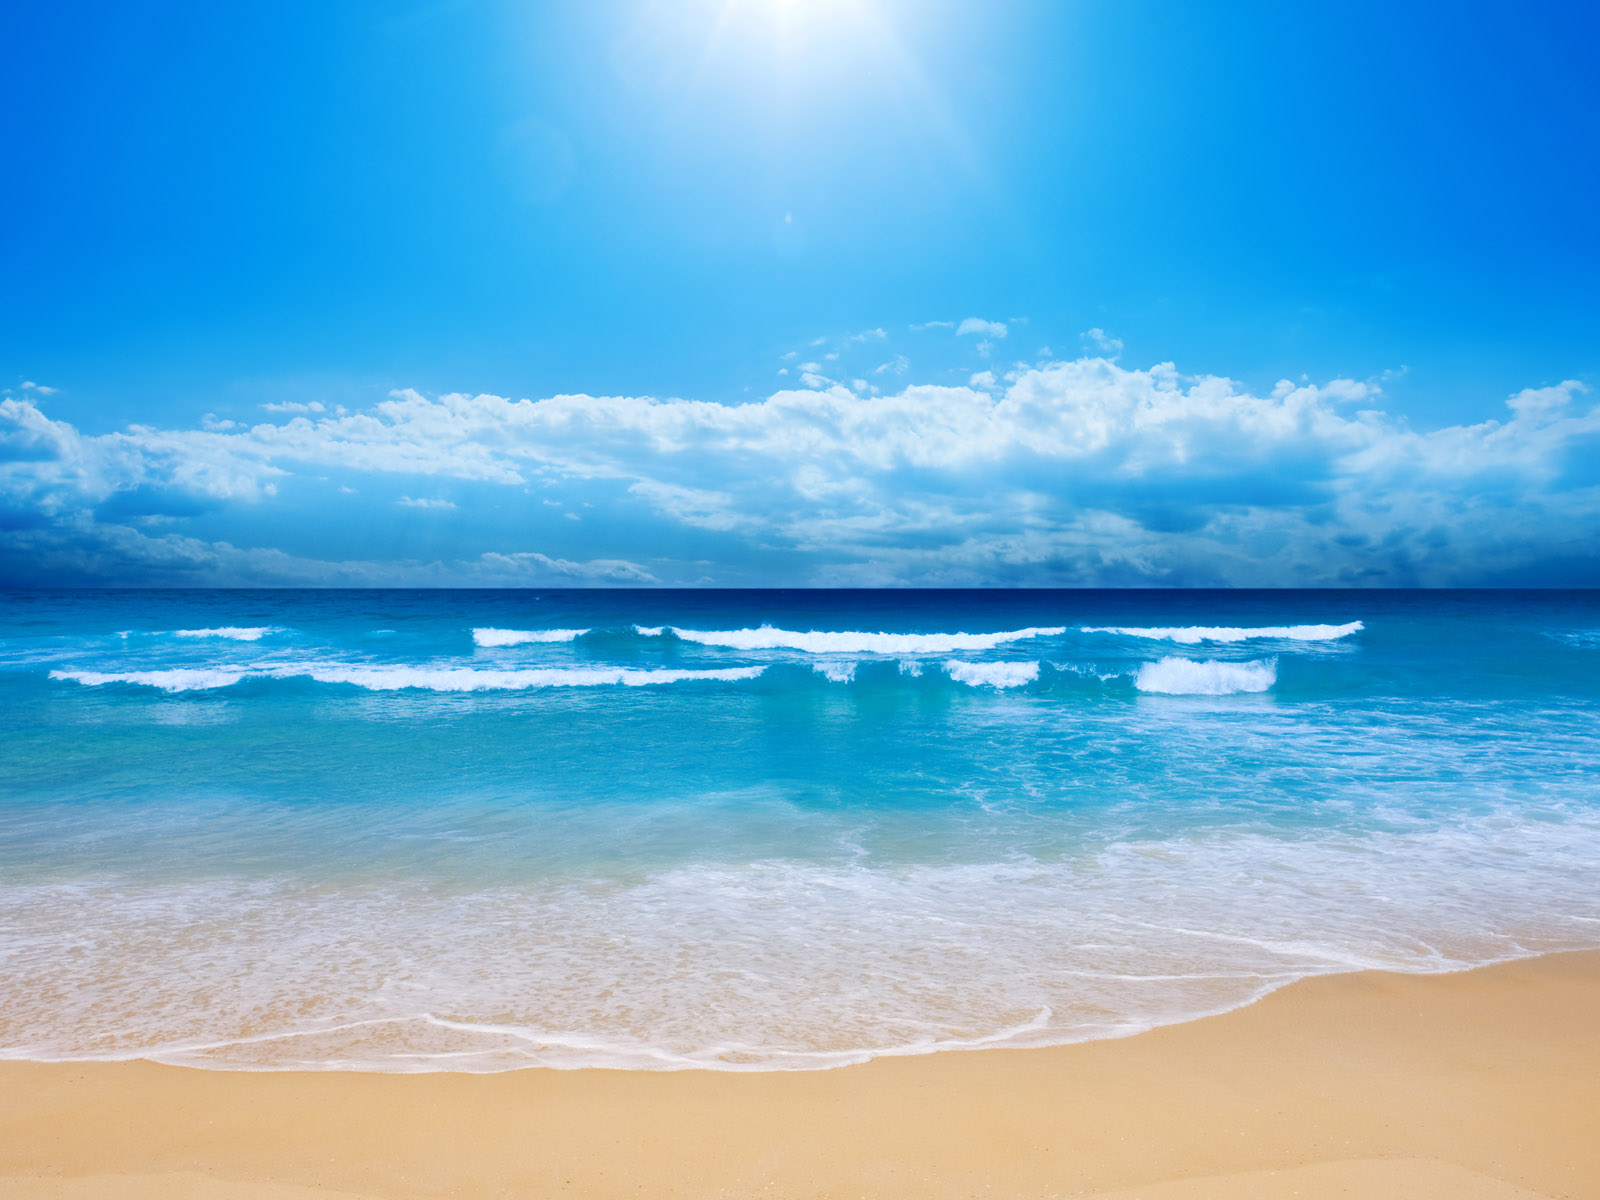 Place For Free HD Wallpapers | Desktop Wallpapers: Beach wallpapers